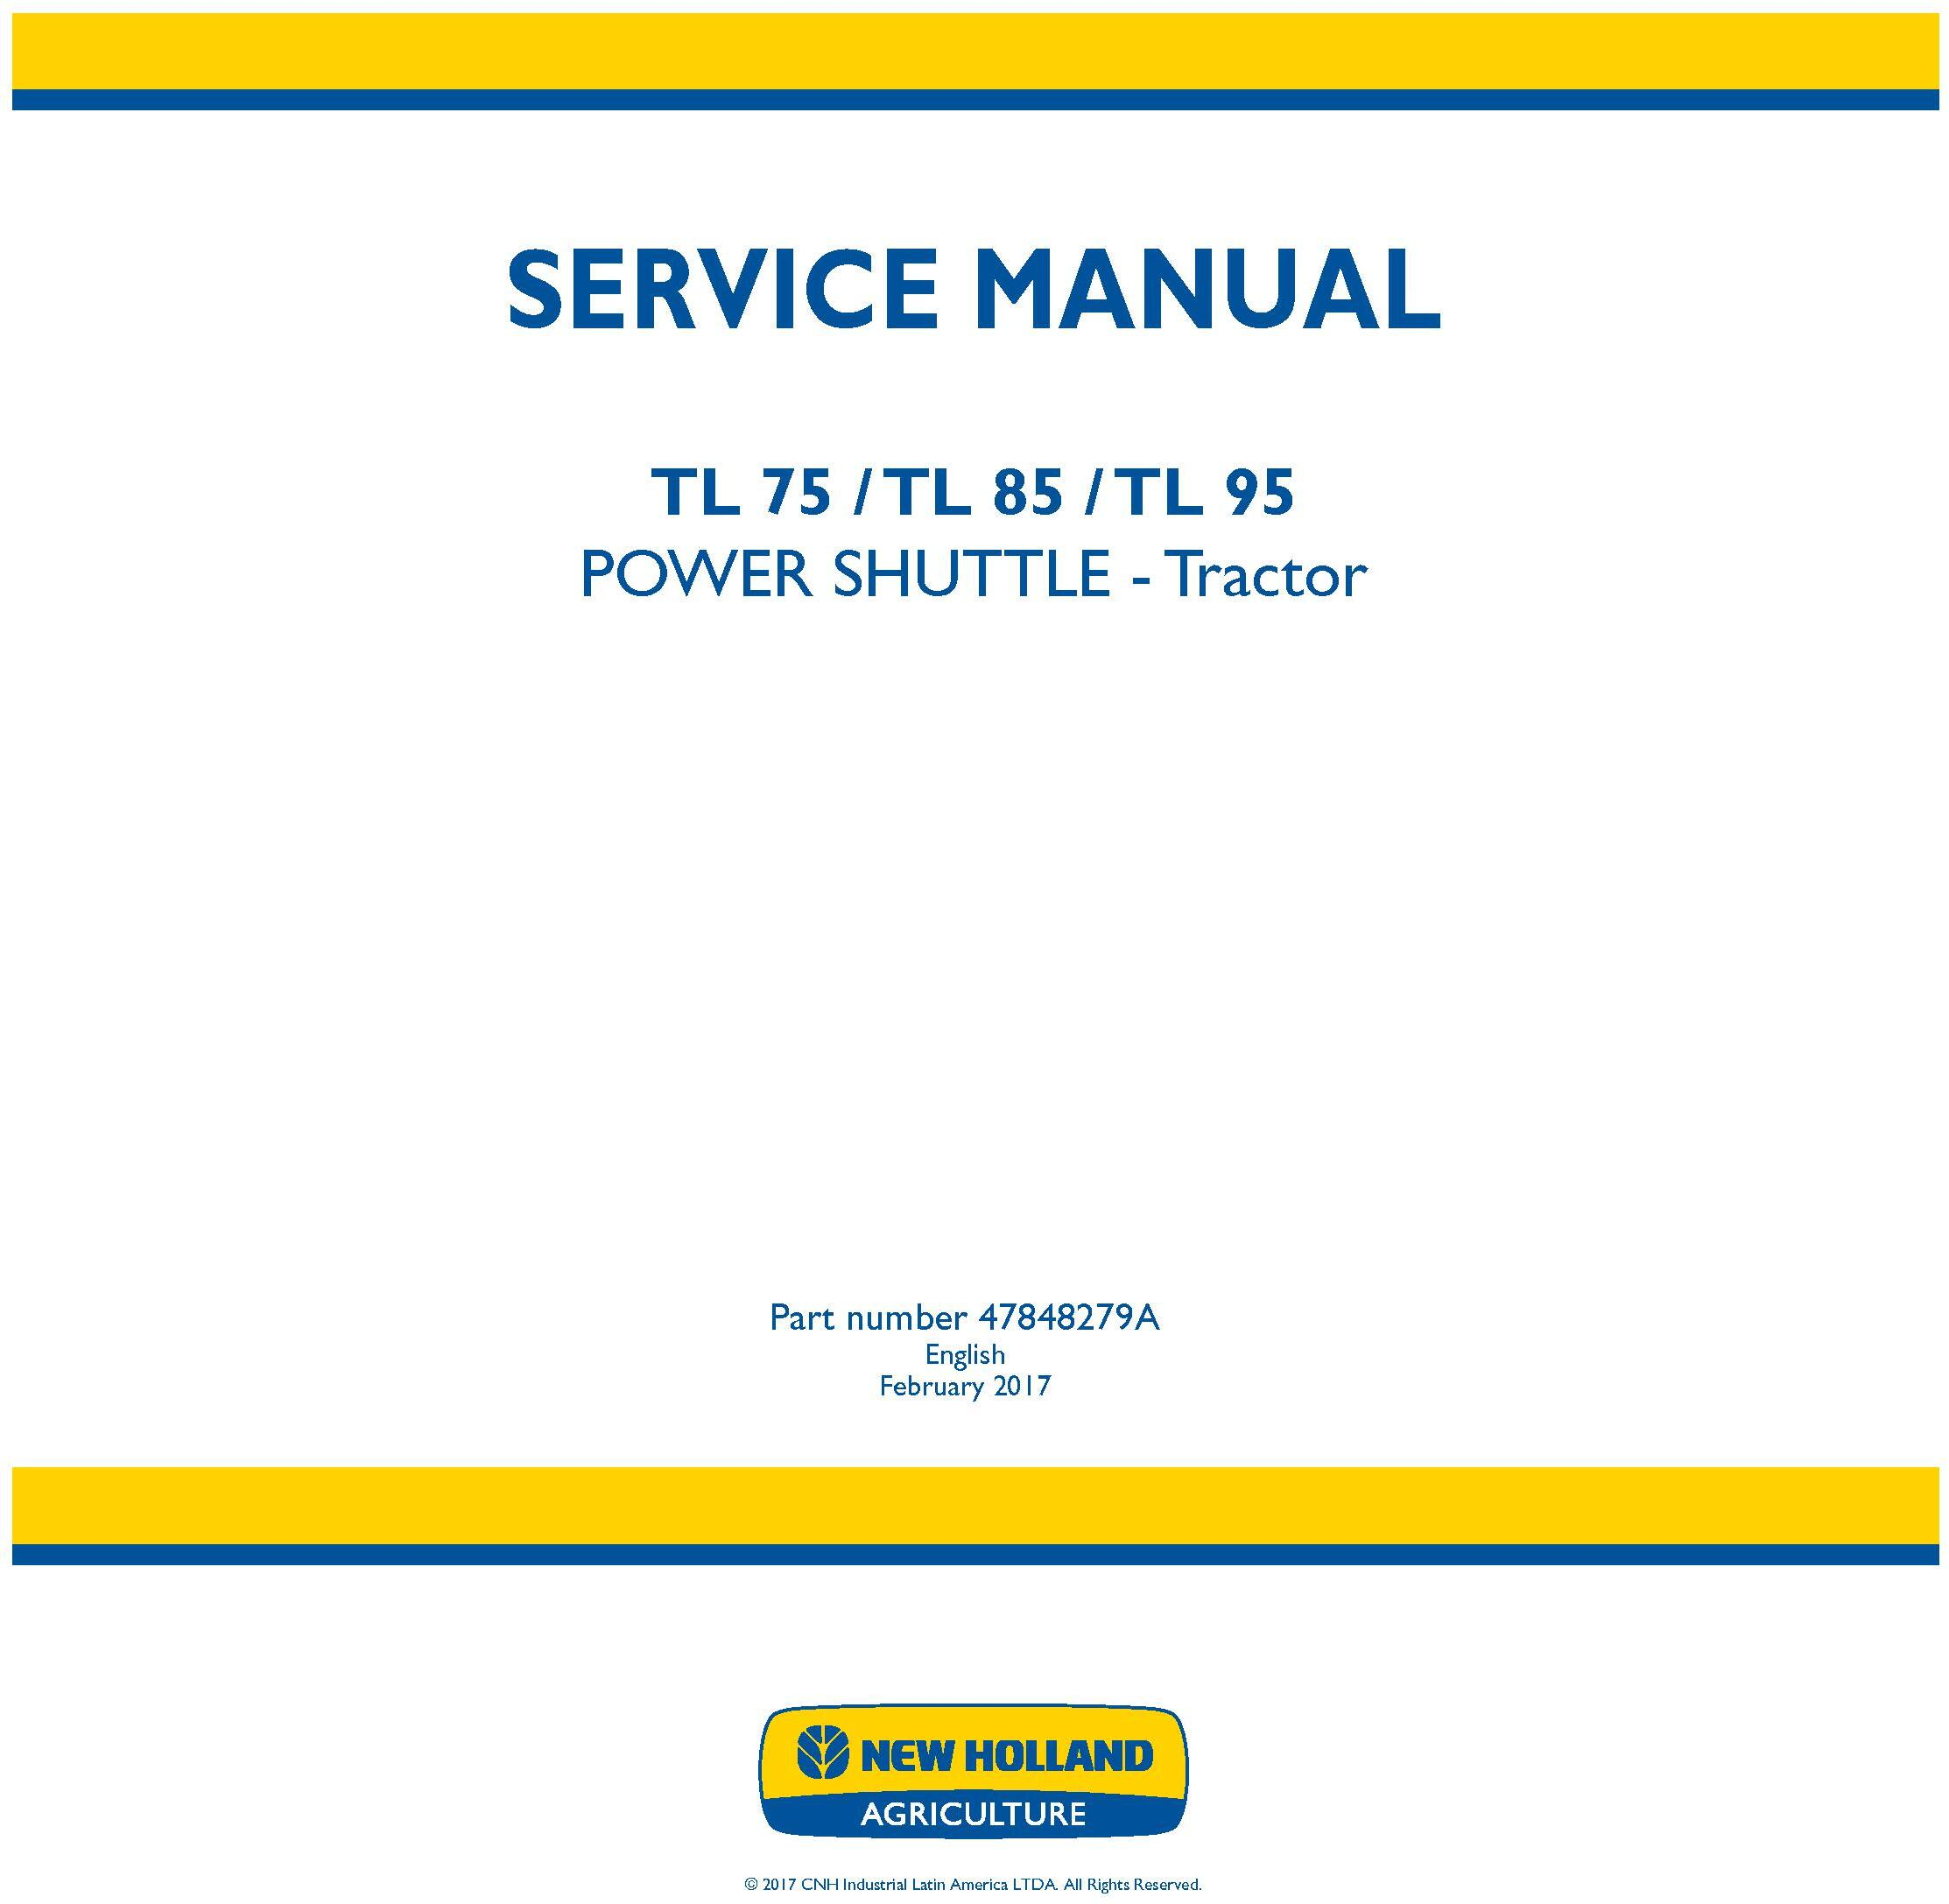 New Holland TL75E, TL85E, TL95E Power shuttle tractor Service Manual (Latin America) - 19425